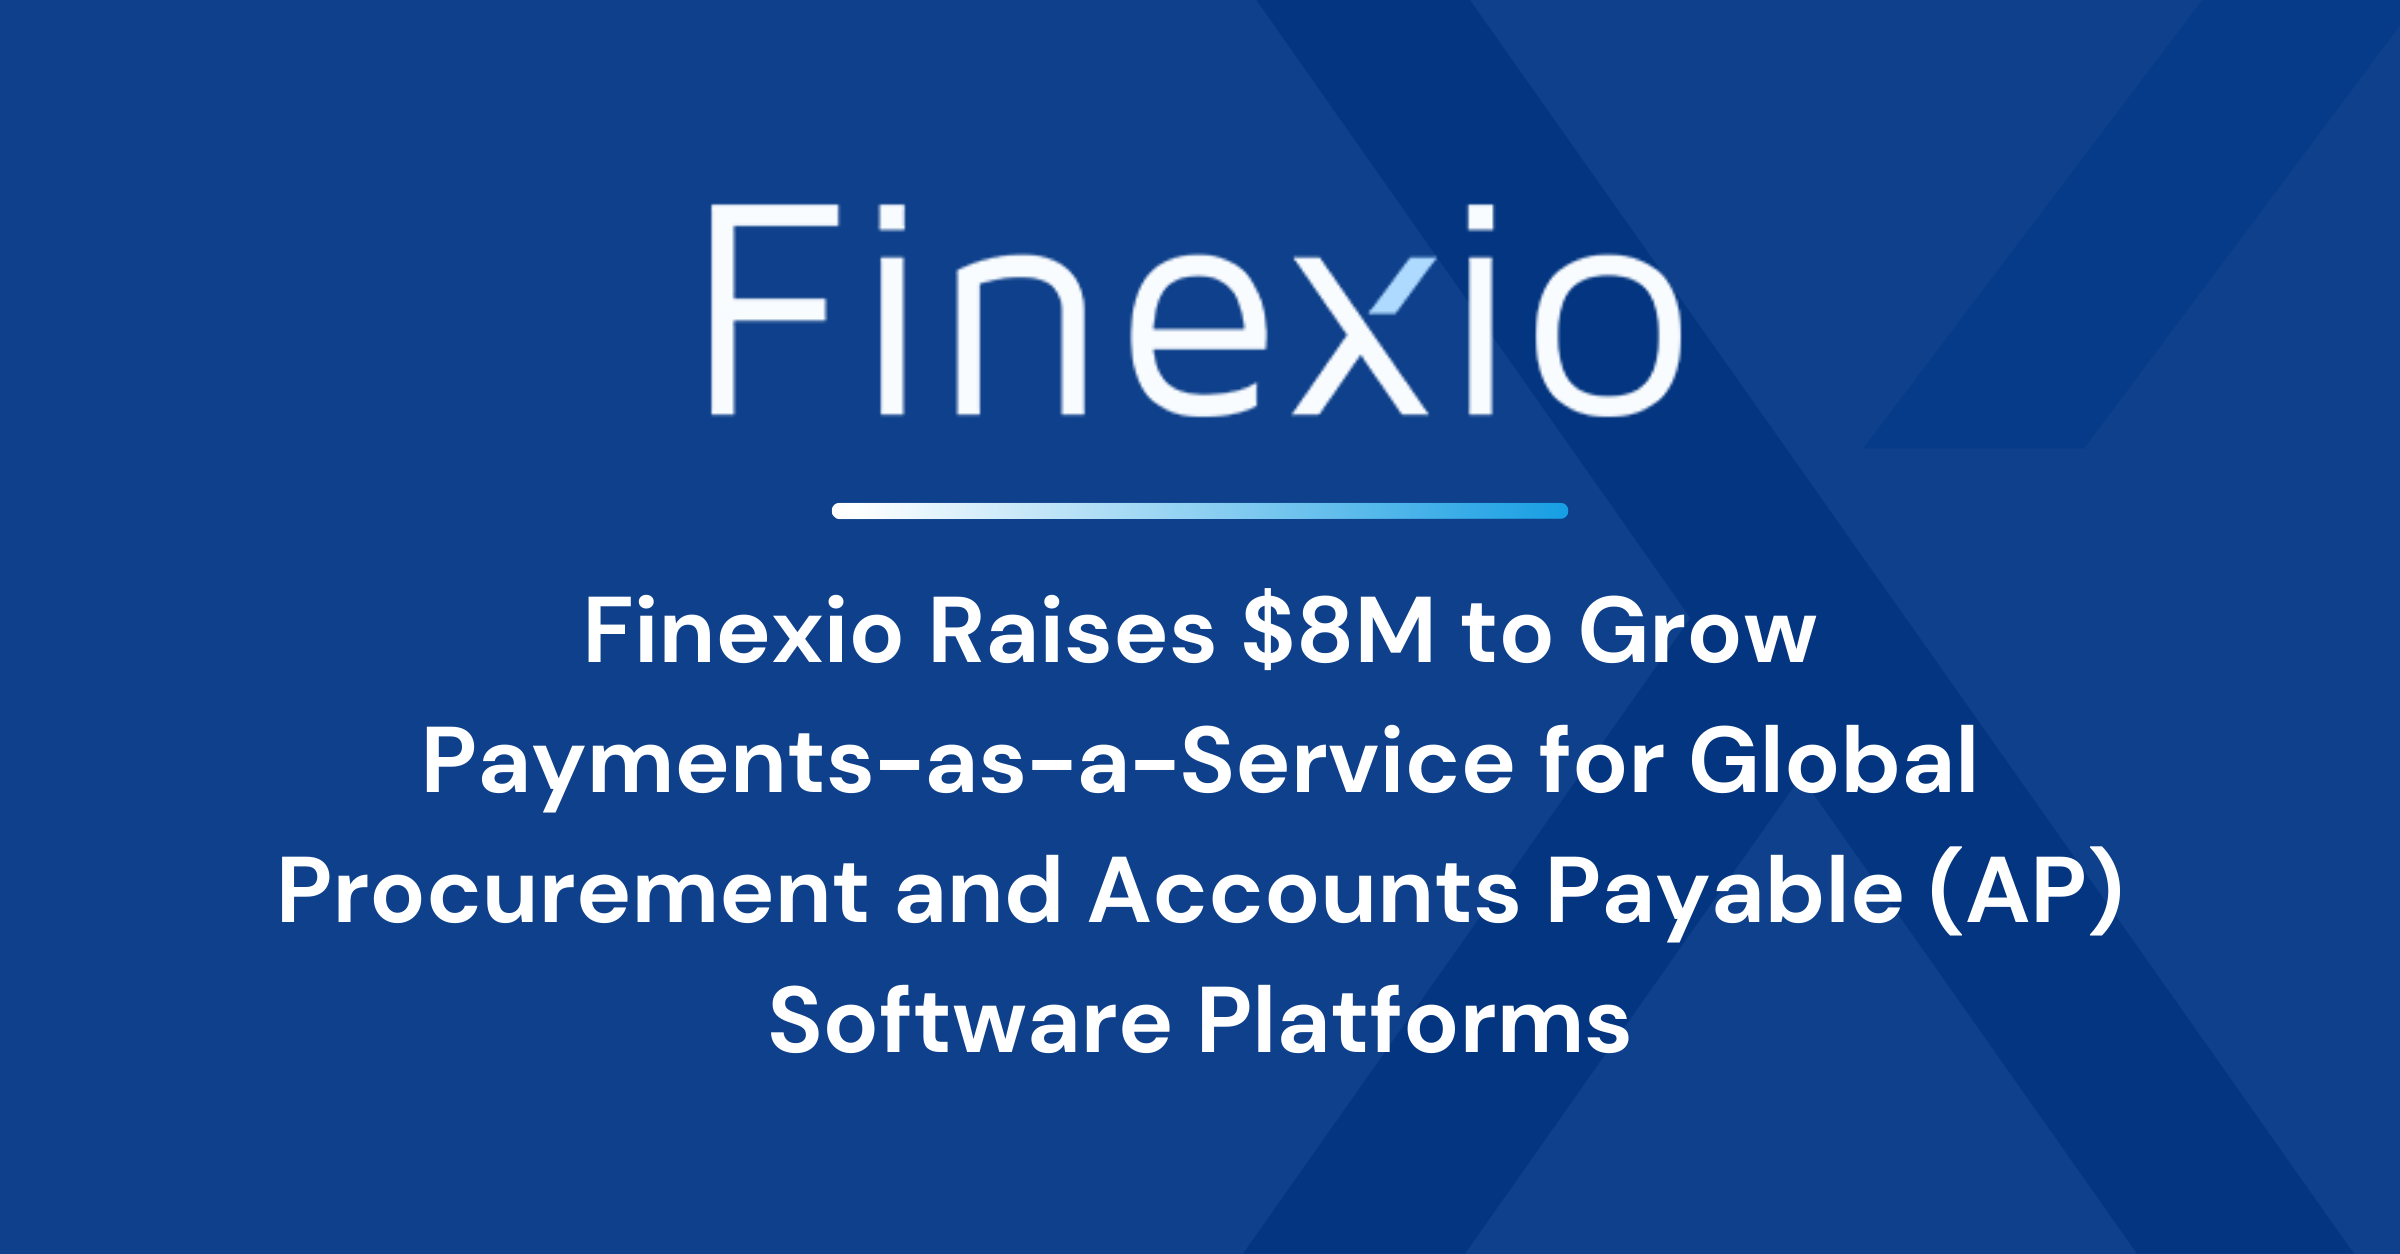 Finexio Raises $8M to Grow Payments-as-a-Service for Global Procurement and AP Software Platforms